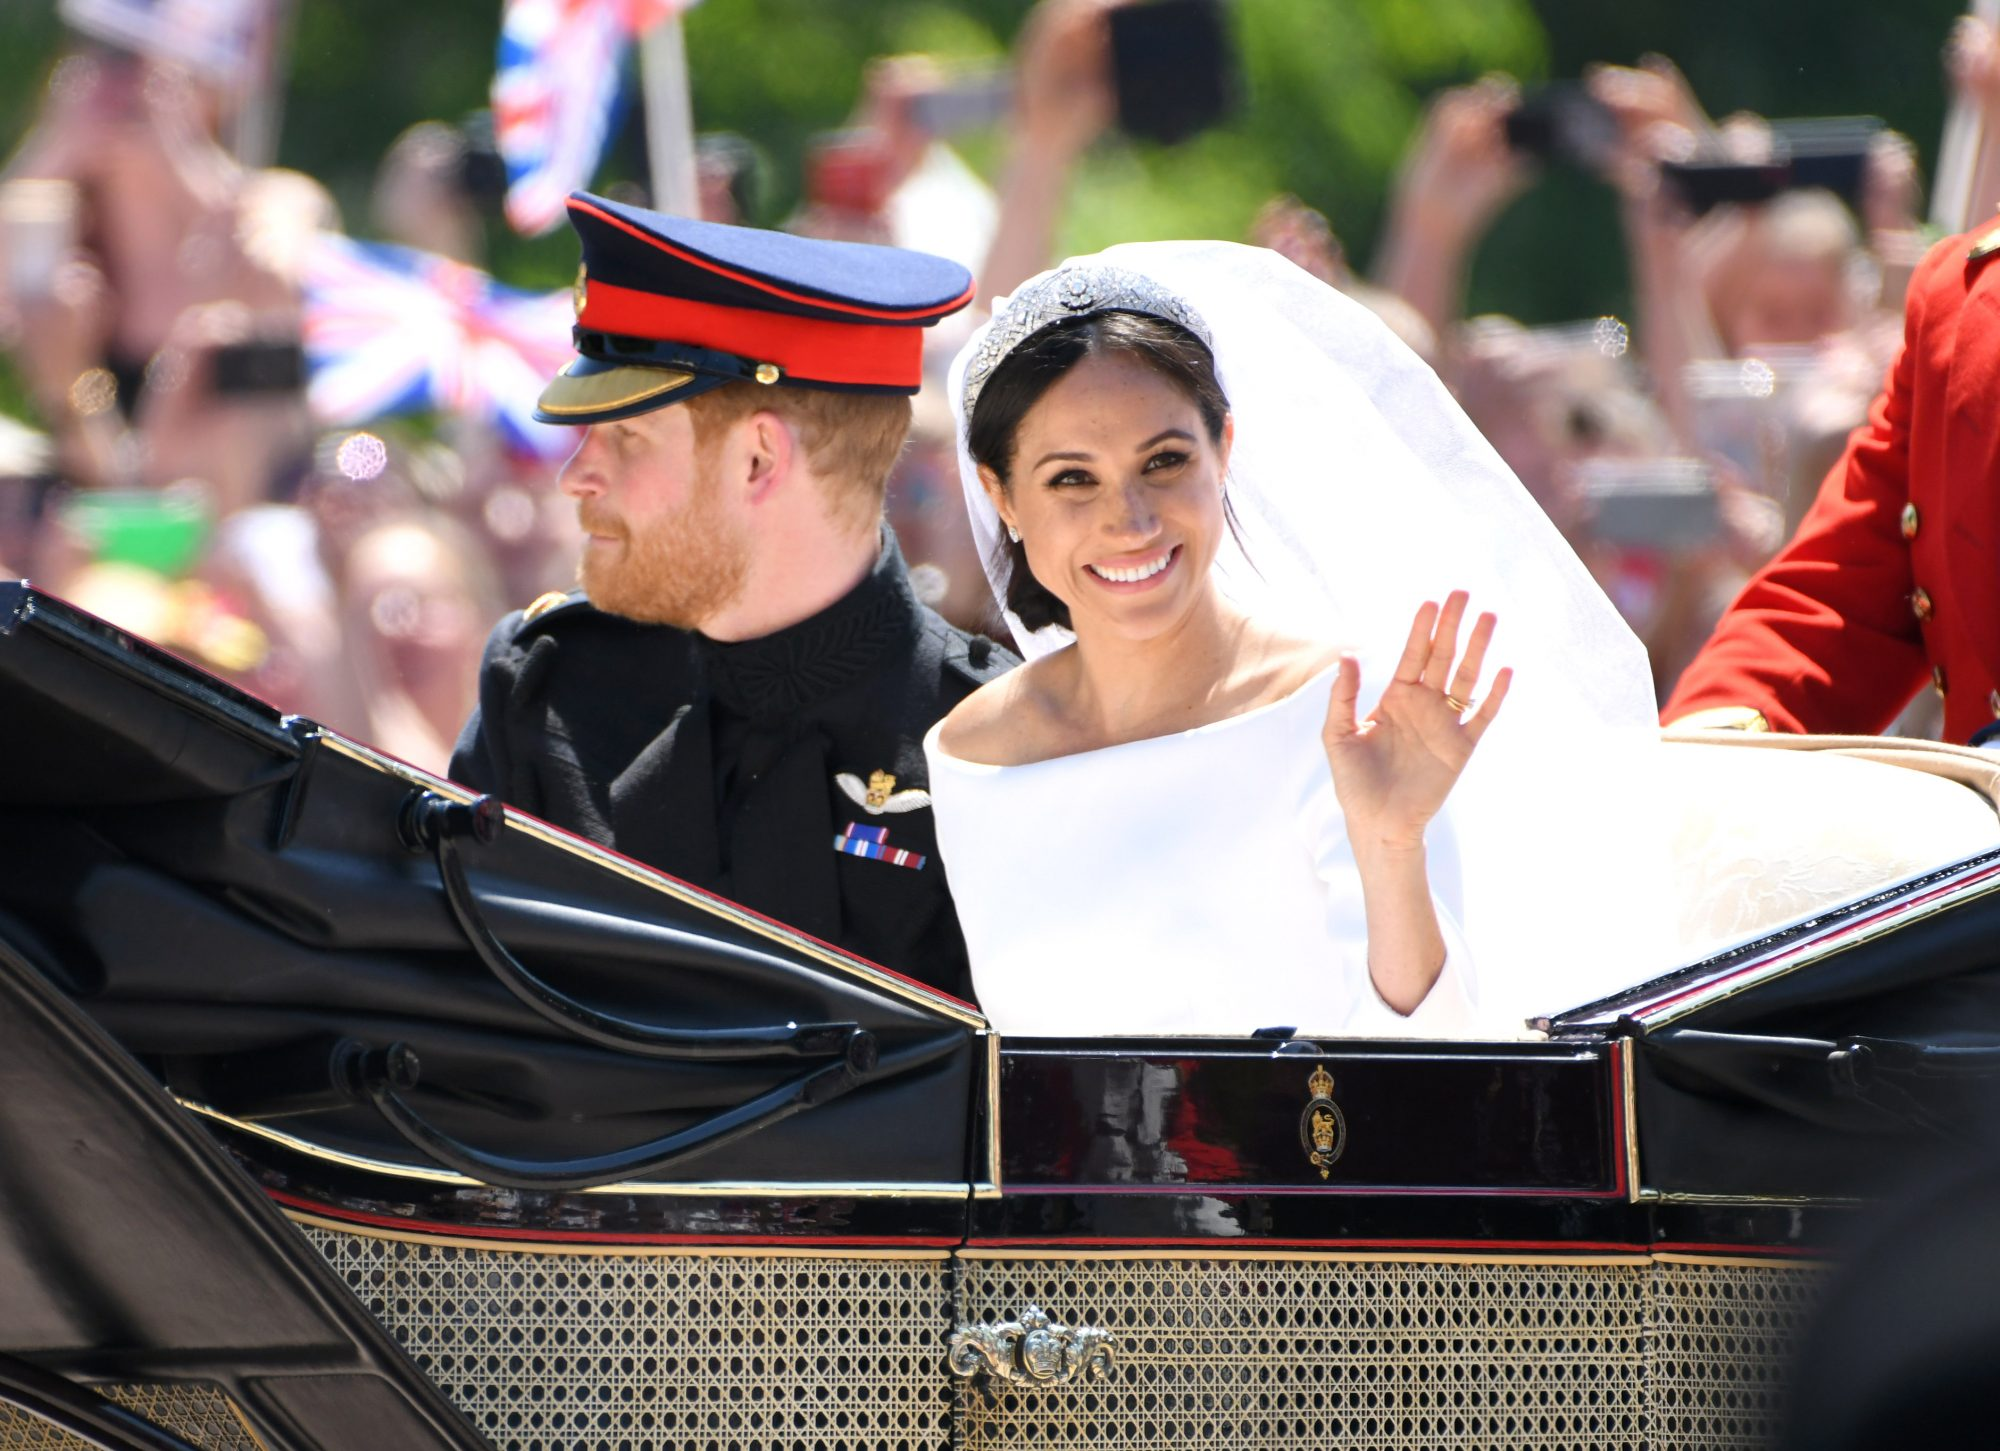 meghan Markle waving at the crowd